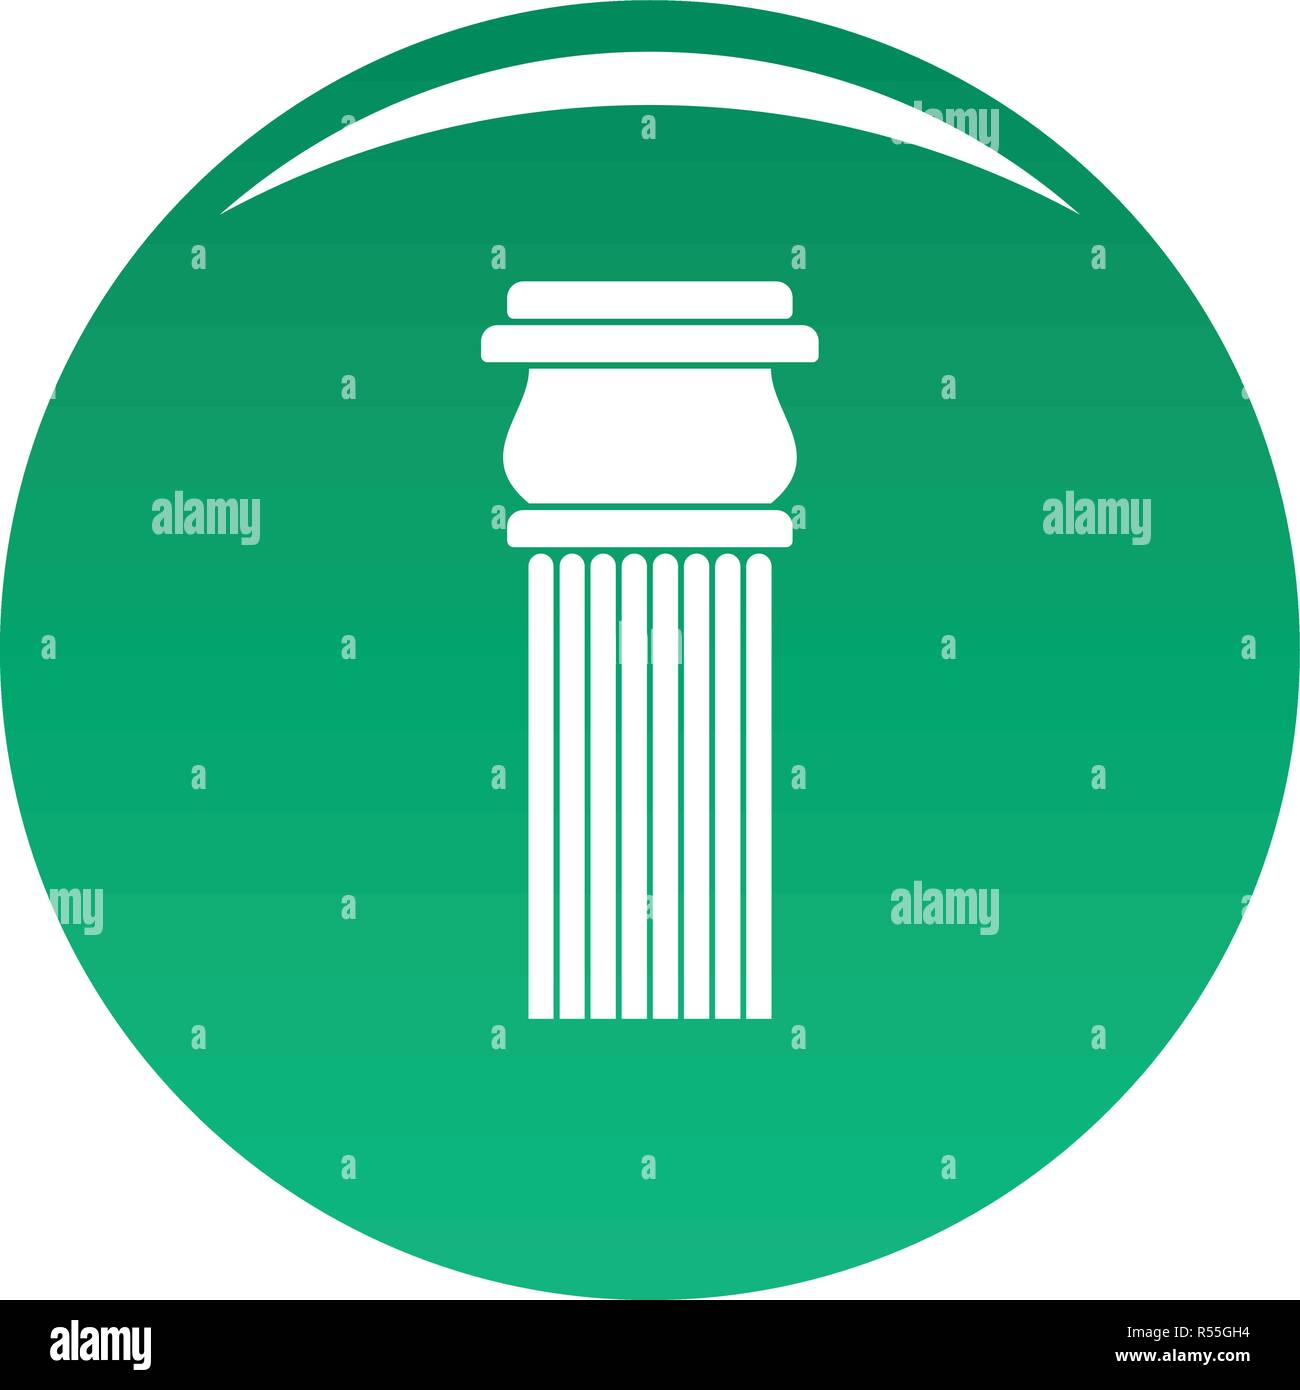 Stone column icon. Simple illustration of stone columnbaseball cap vector icon for any design green - Stock Image